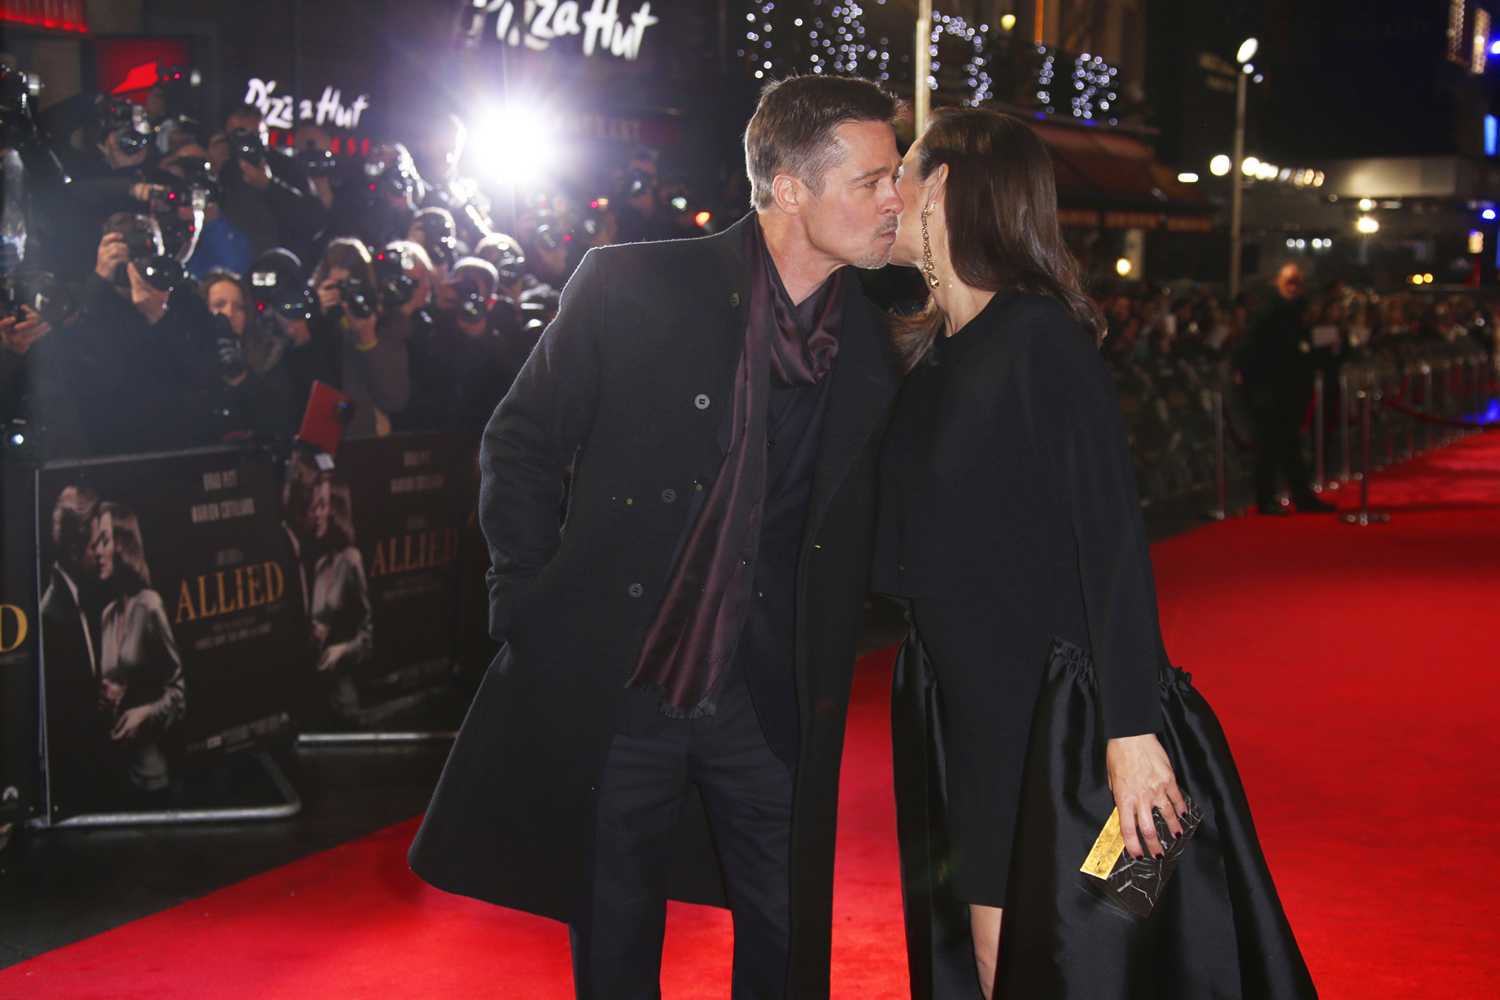 Actor Brad Pitt greets fellow actor Marion Cotillard upon arrival at the premiere of the film 'Allied' in London, Monday, Nov. 21, 2016. (Photo by Joel Ryan/Invision/AP) |